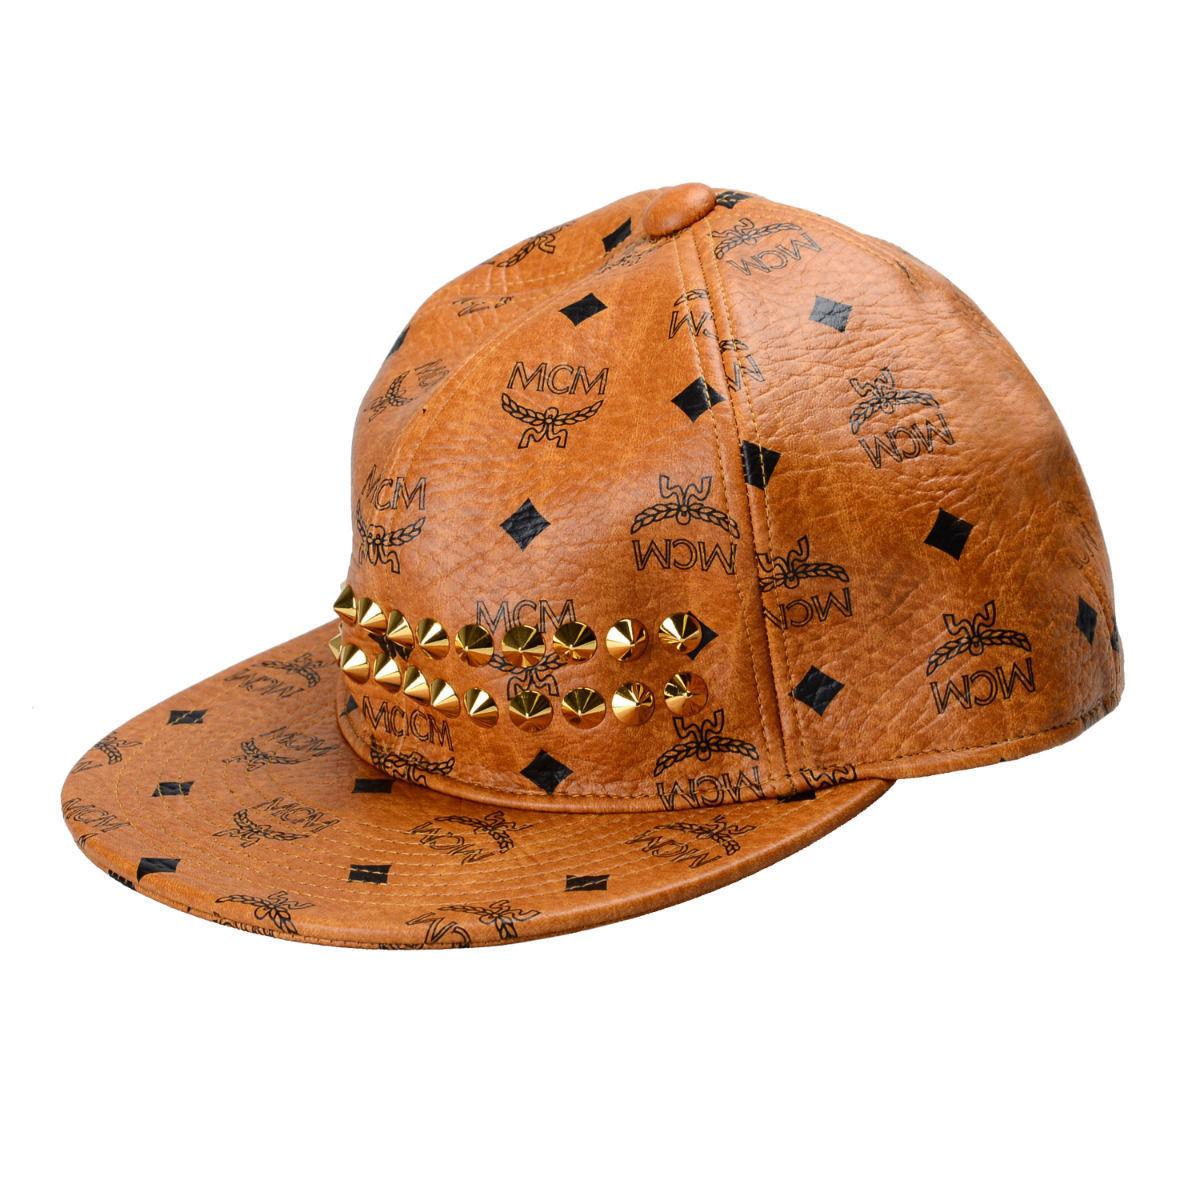 a2447f417010d ... discount code for mcm bucket hat cognac brands 3e5e7 9106d